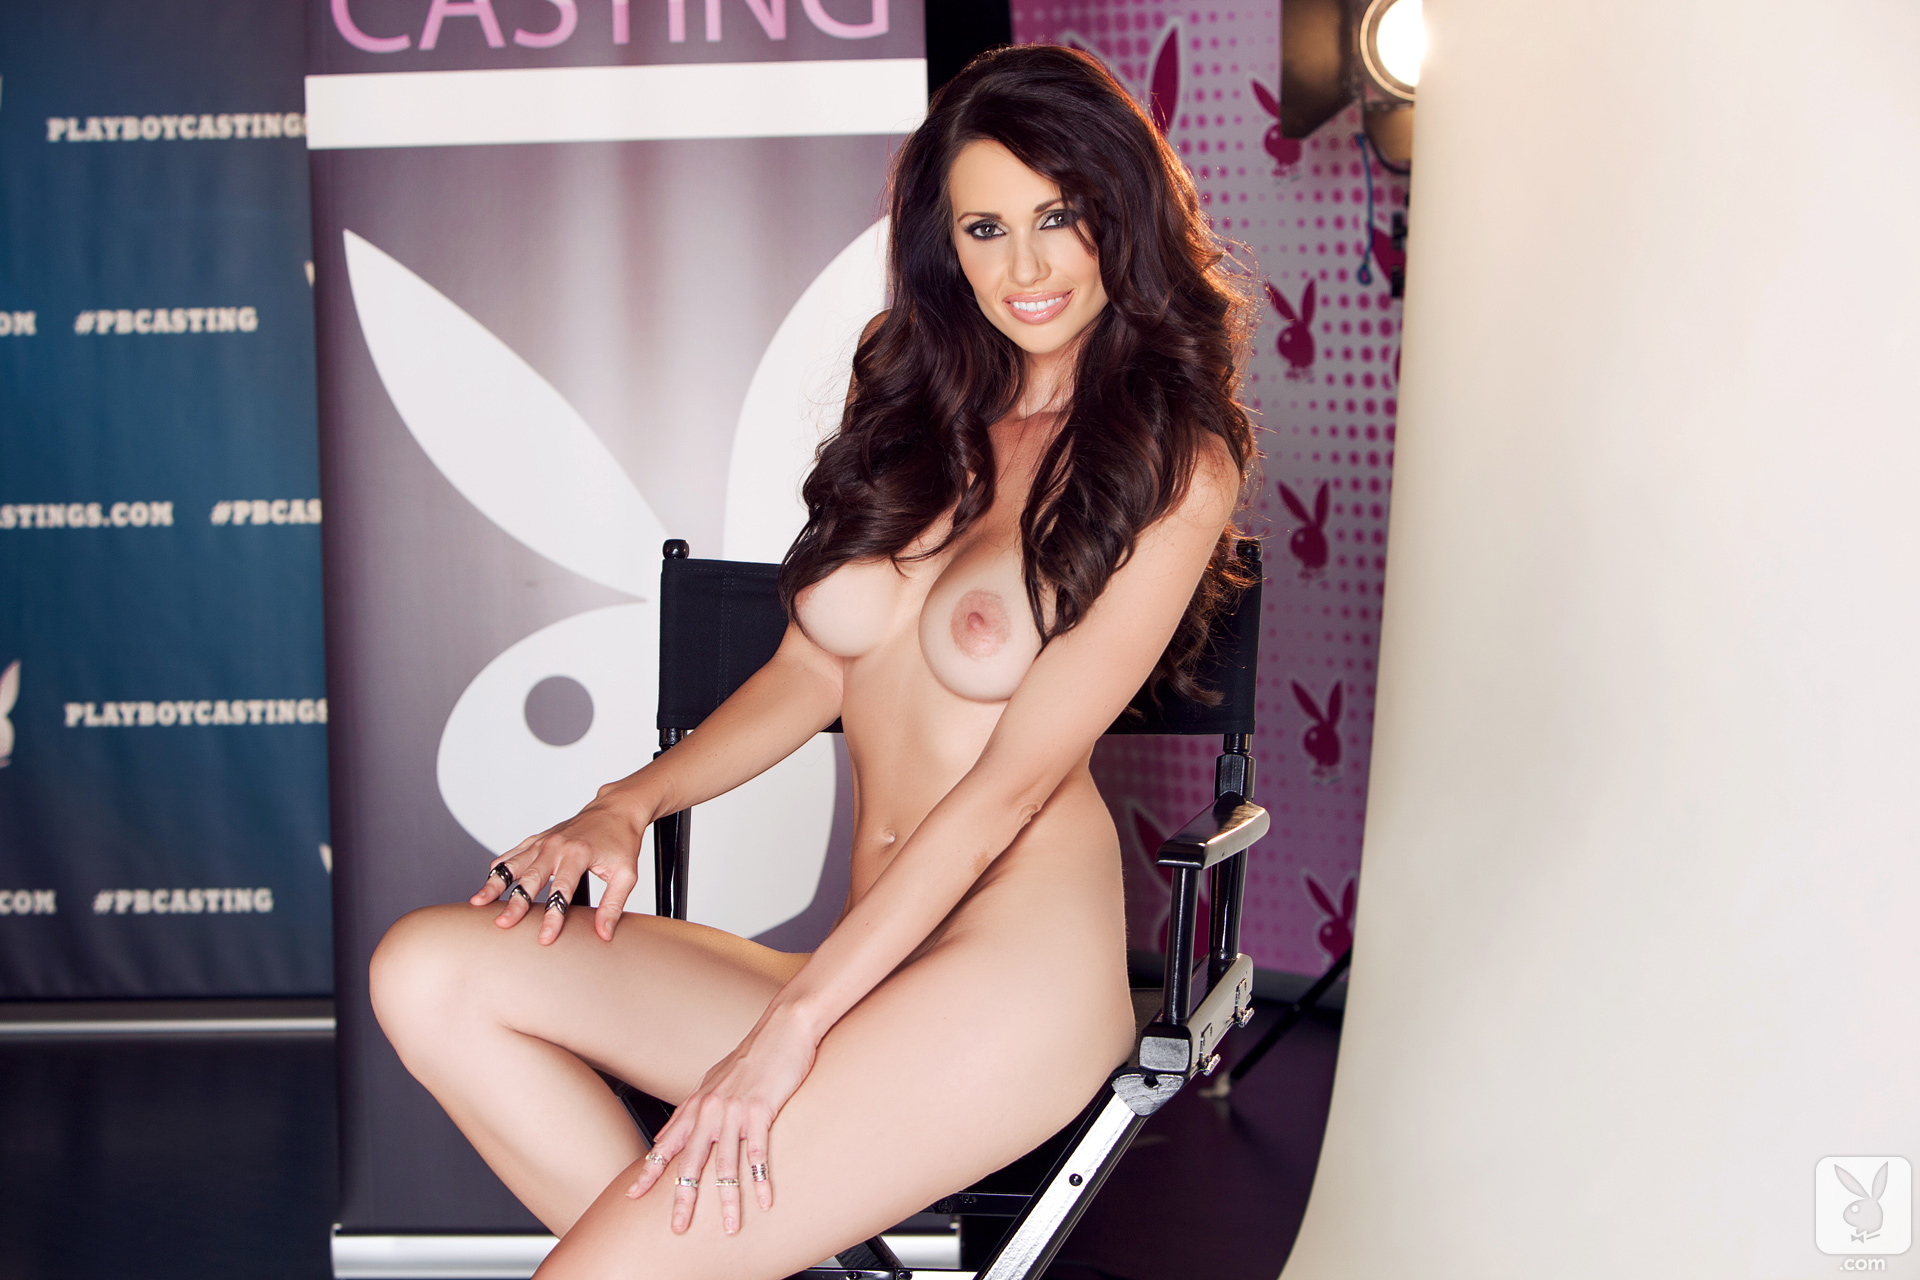 Holli Pockets In Casting Chair Playboy Plus (26)